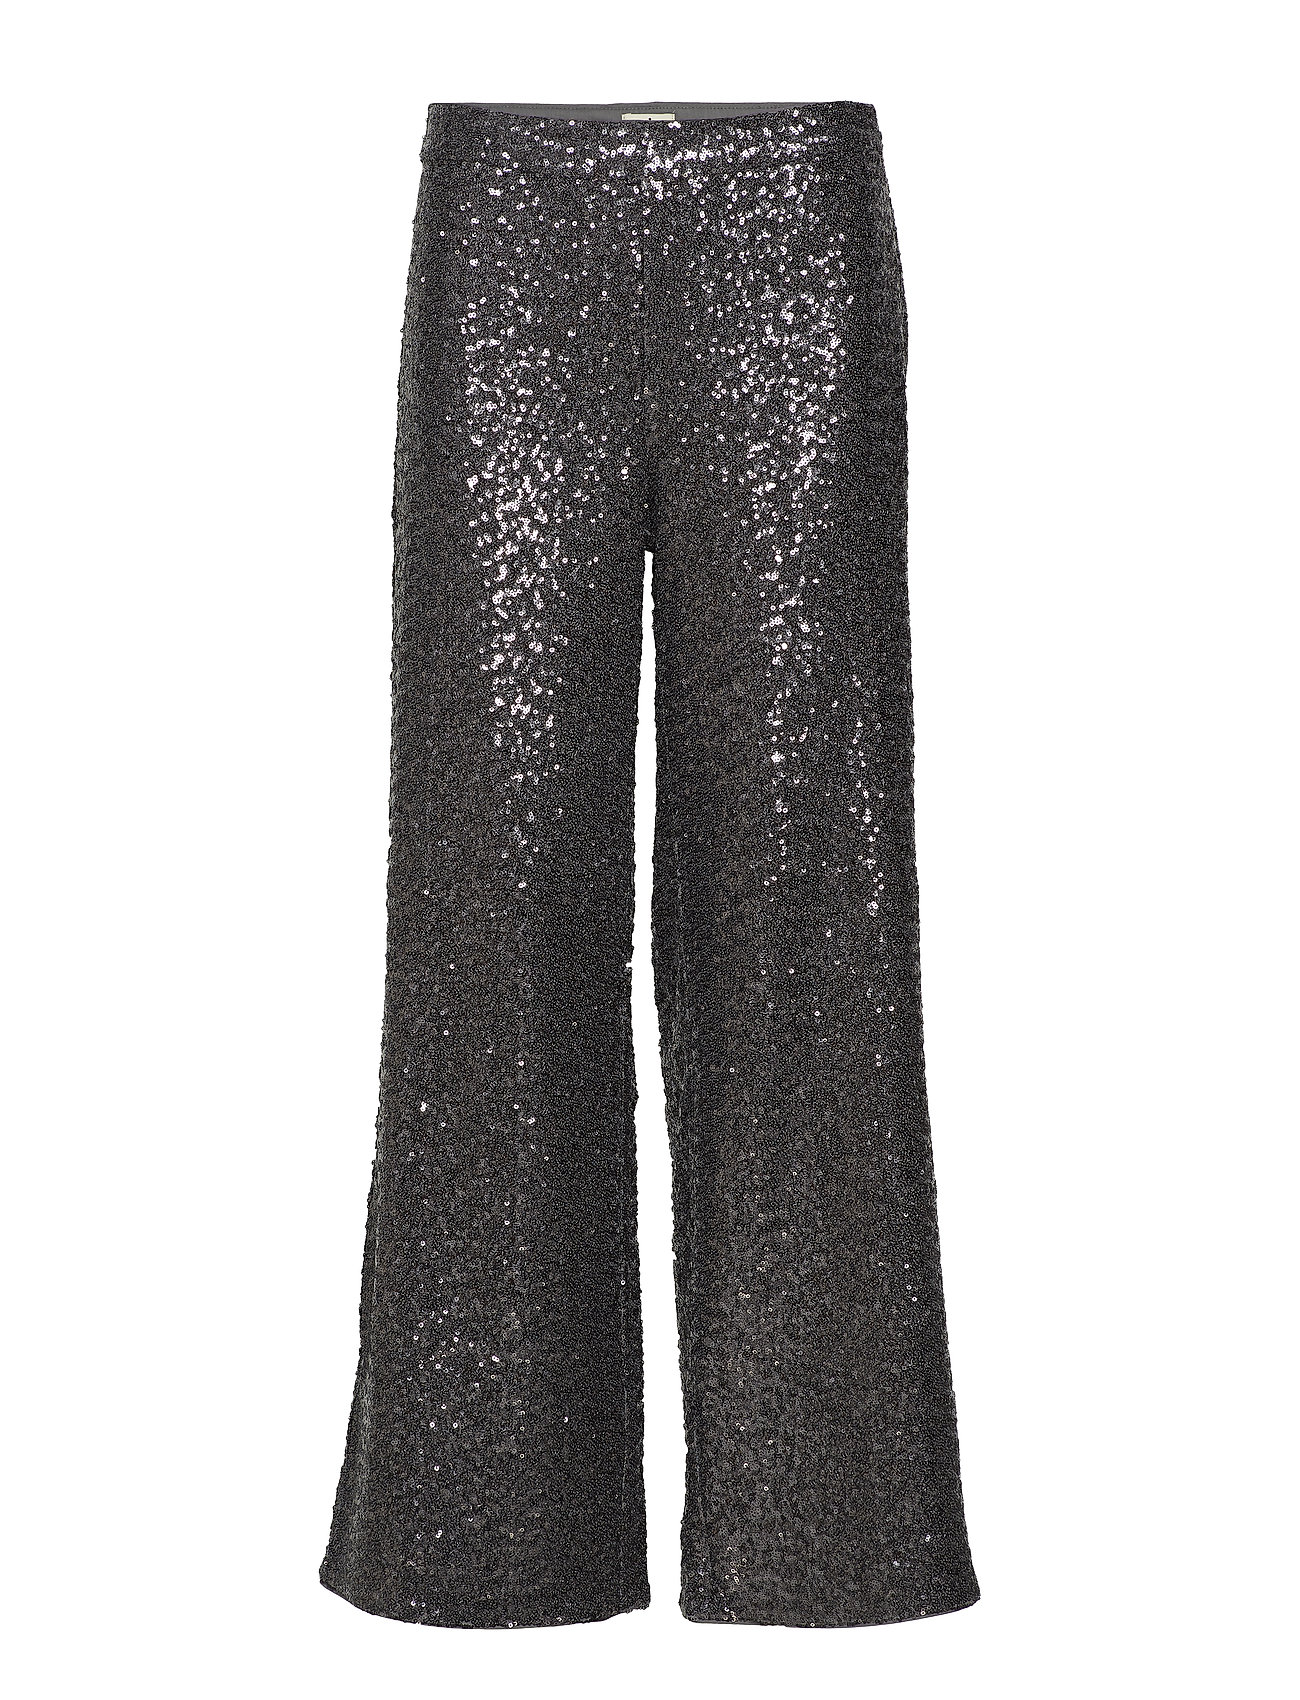 Twist & Tango May  Sequin Trousers - GUN METAL